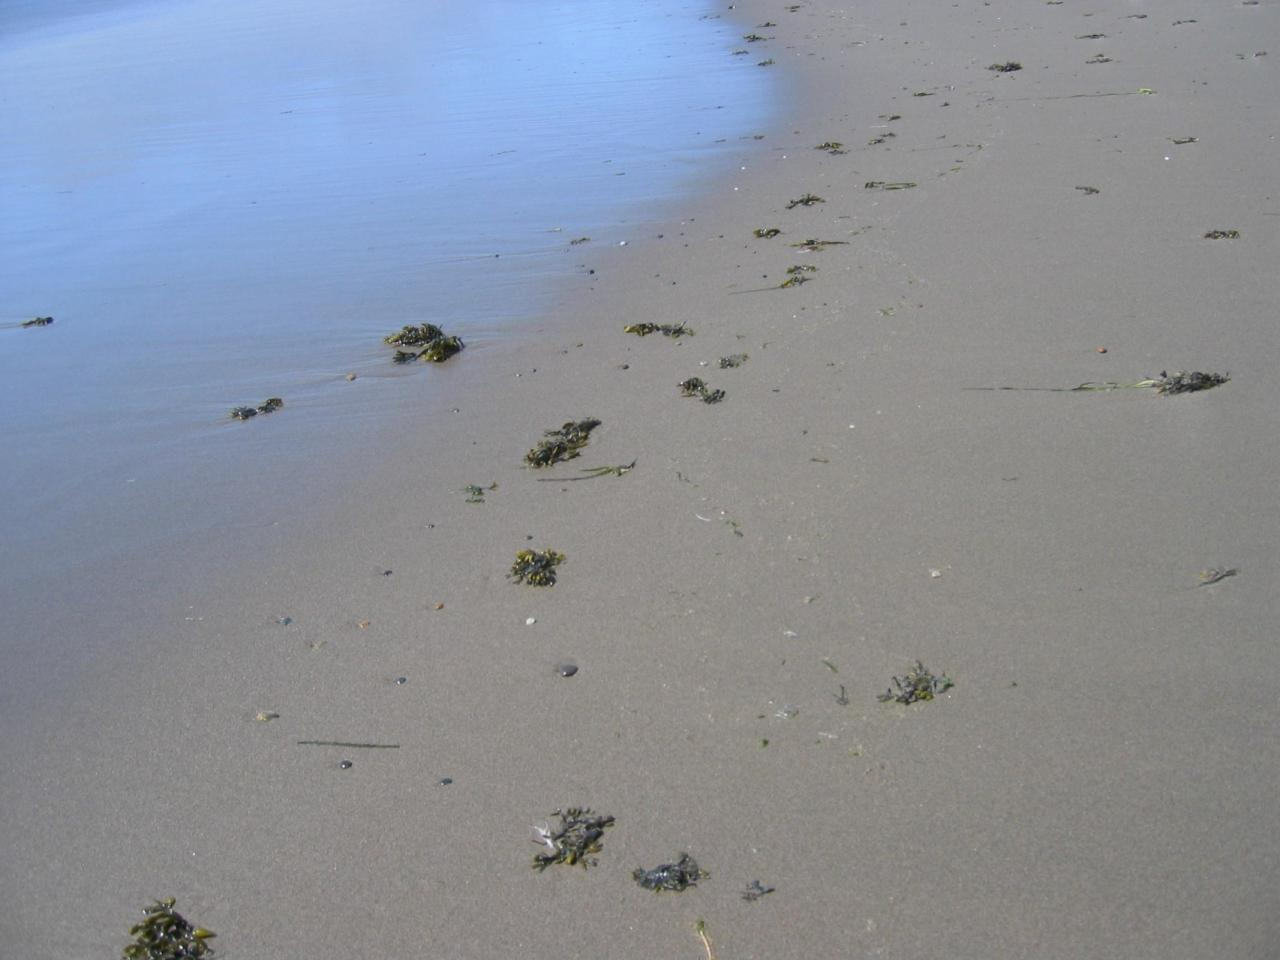 Rockweed and eelgrass accumulated along the low-tide zone.